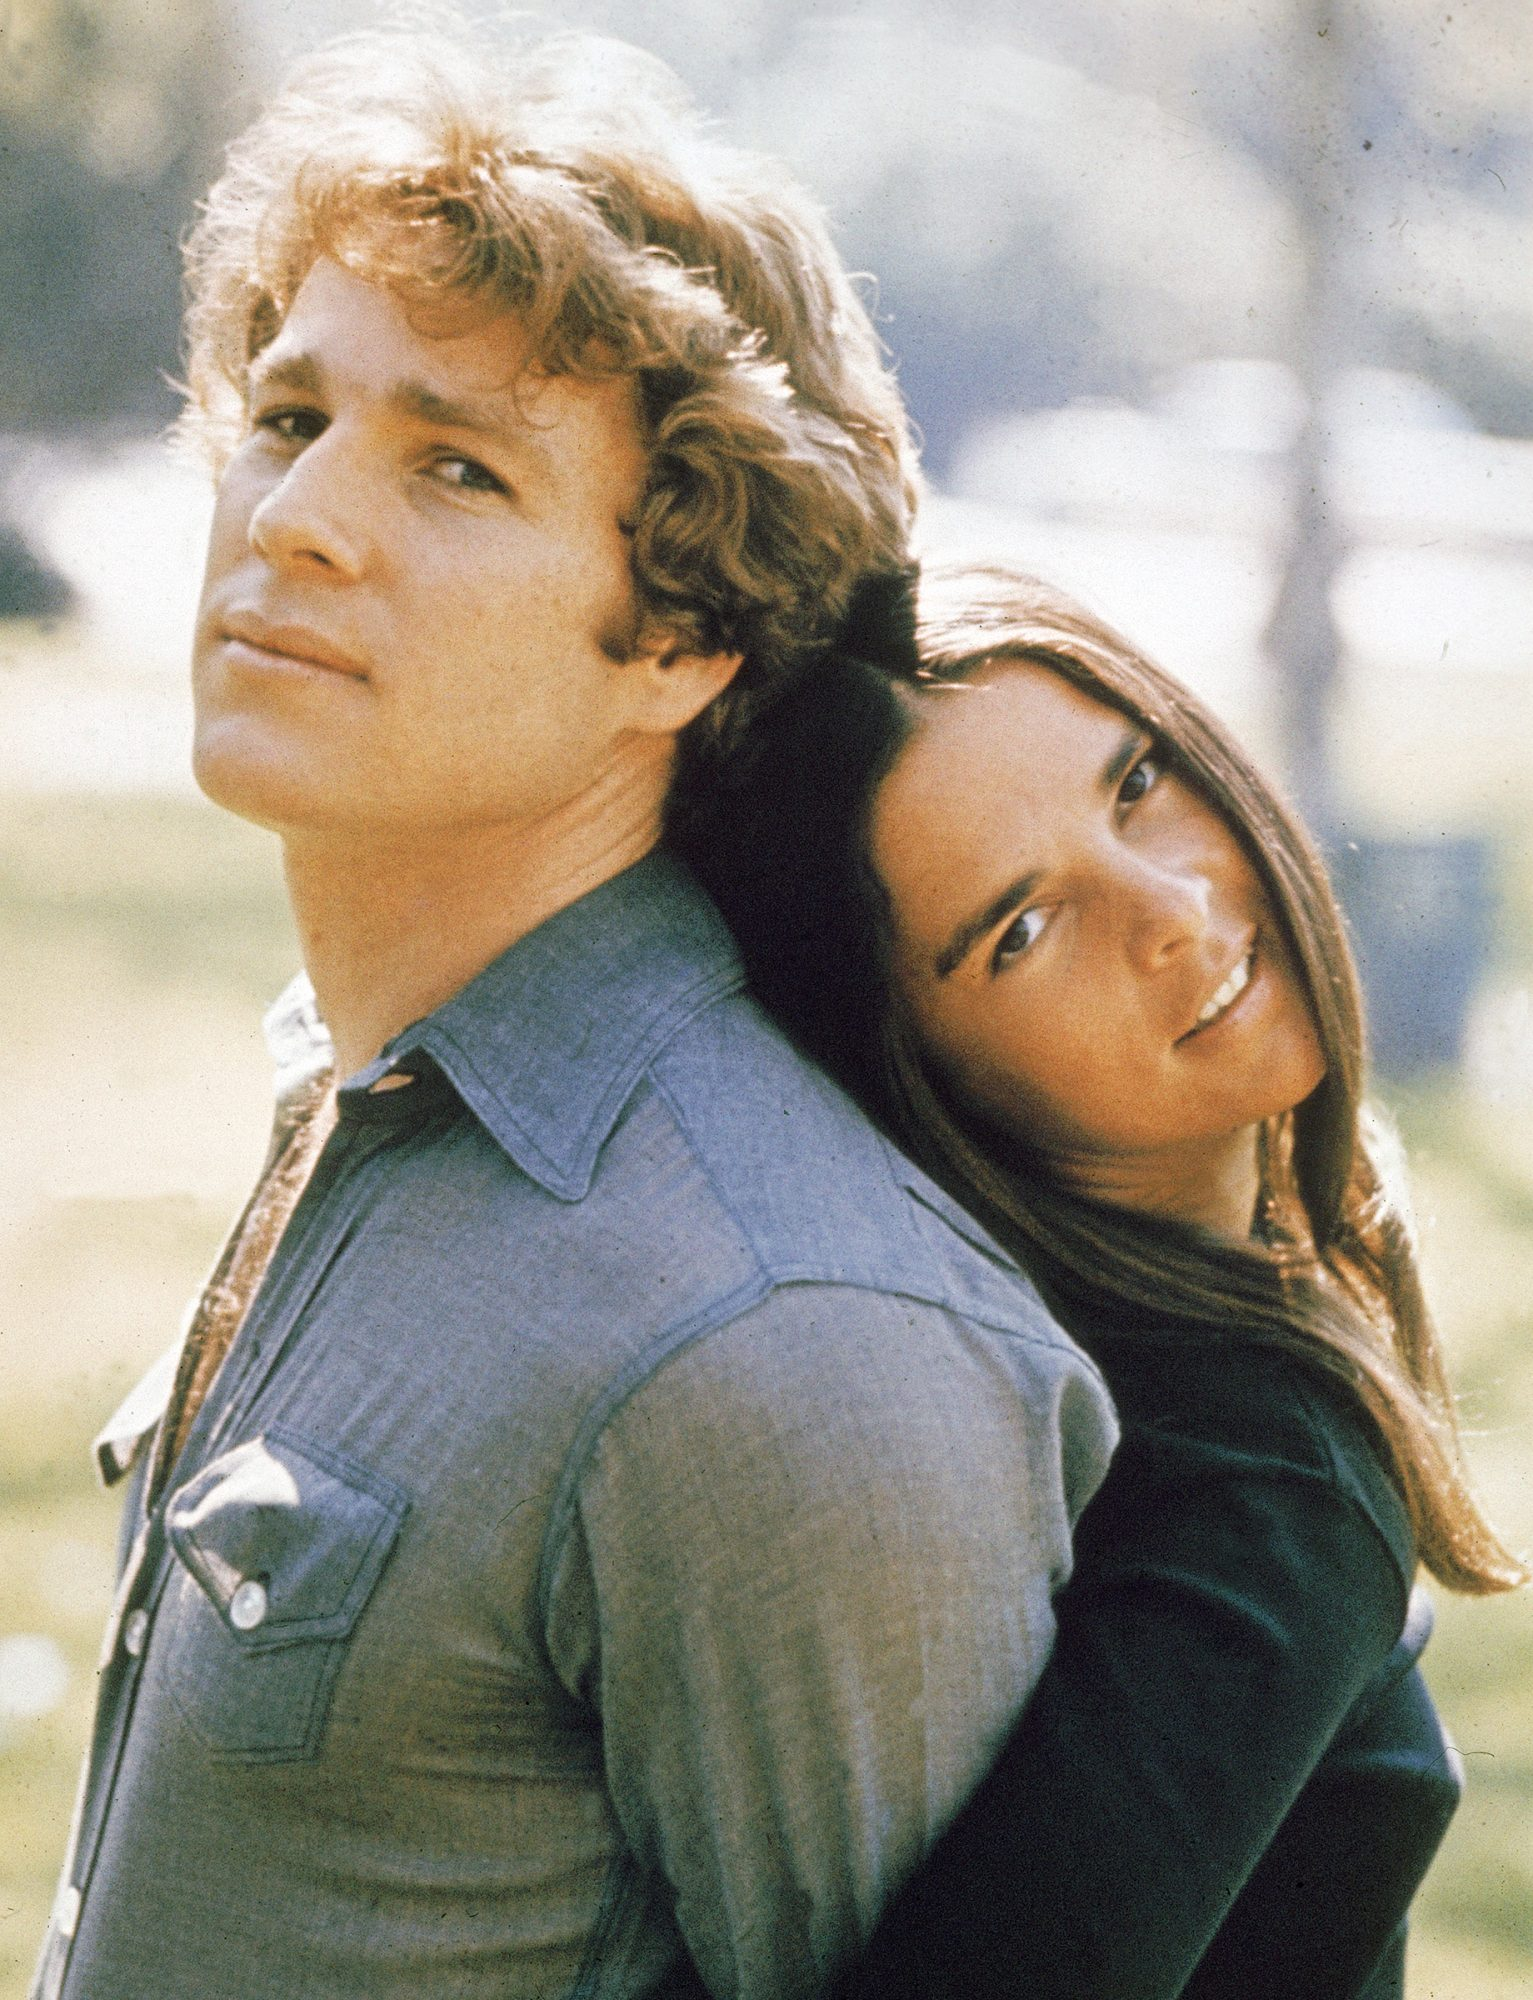 Ryan O'Neal And Ali MacGraw In 'Love Story,' 1970